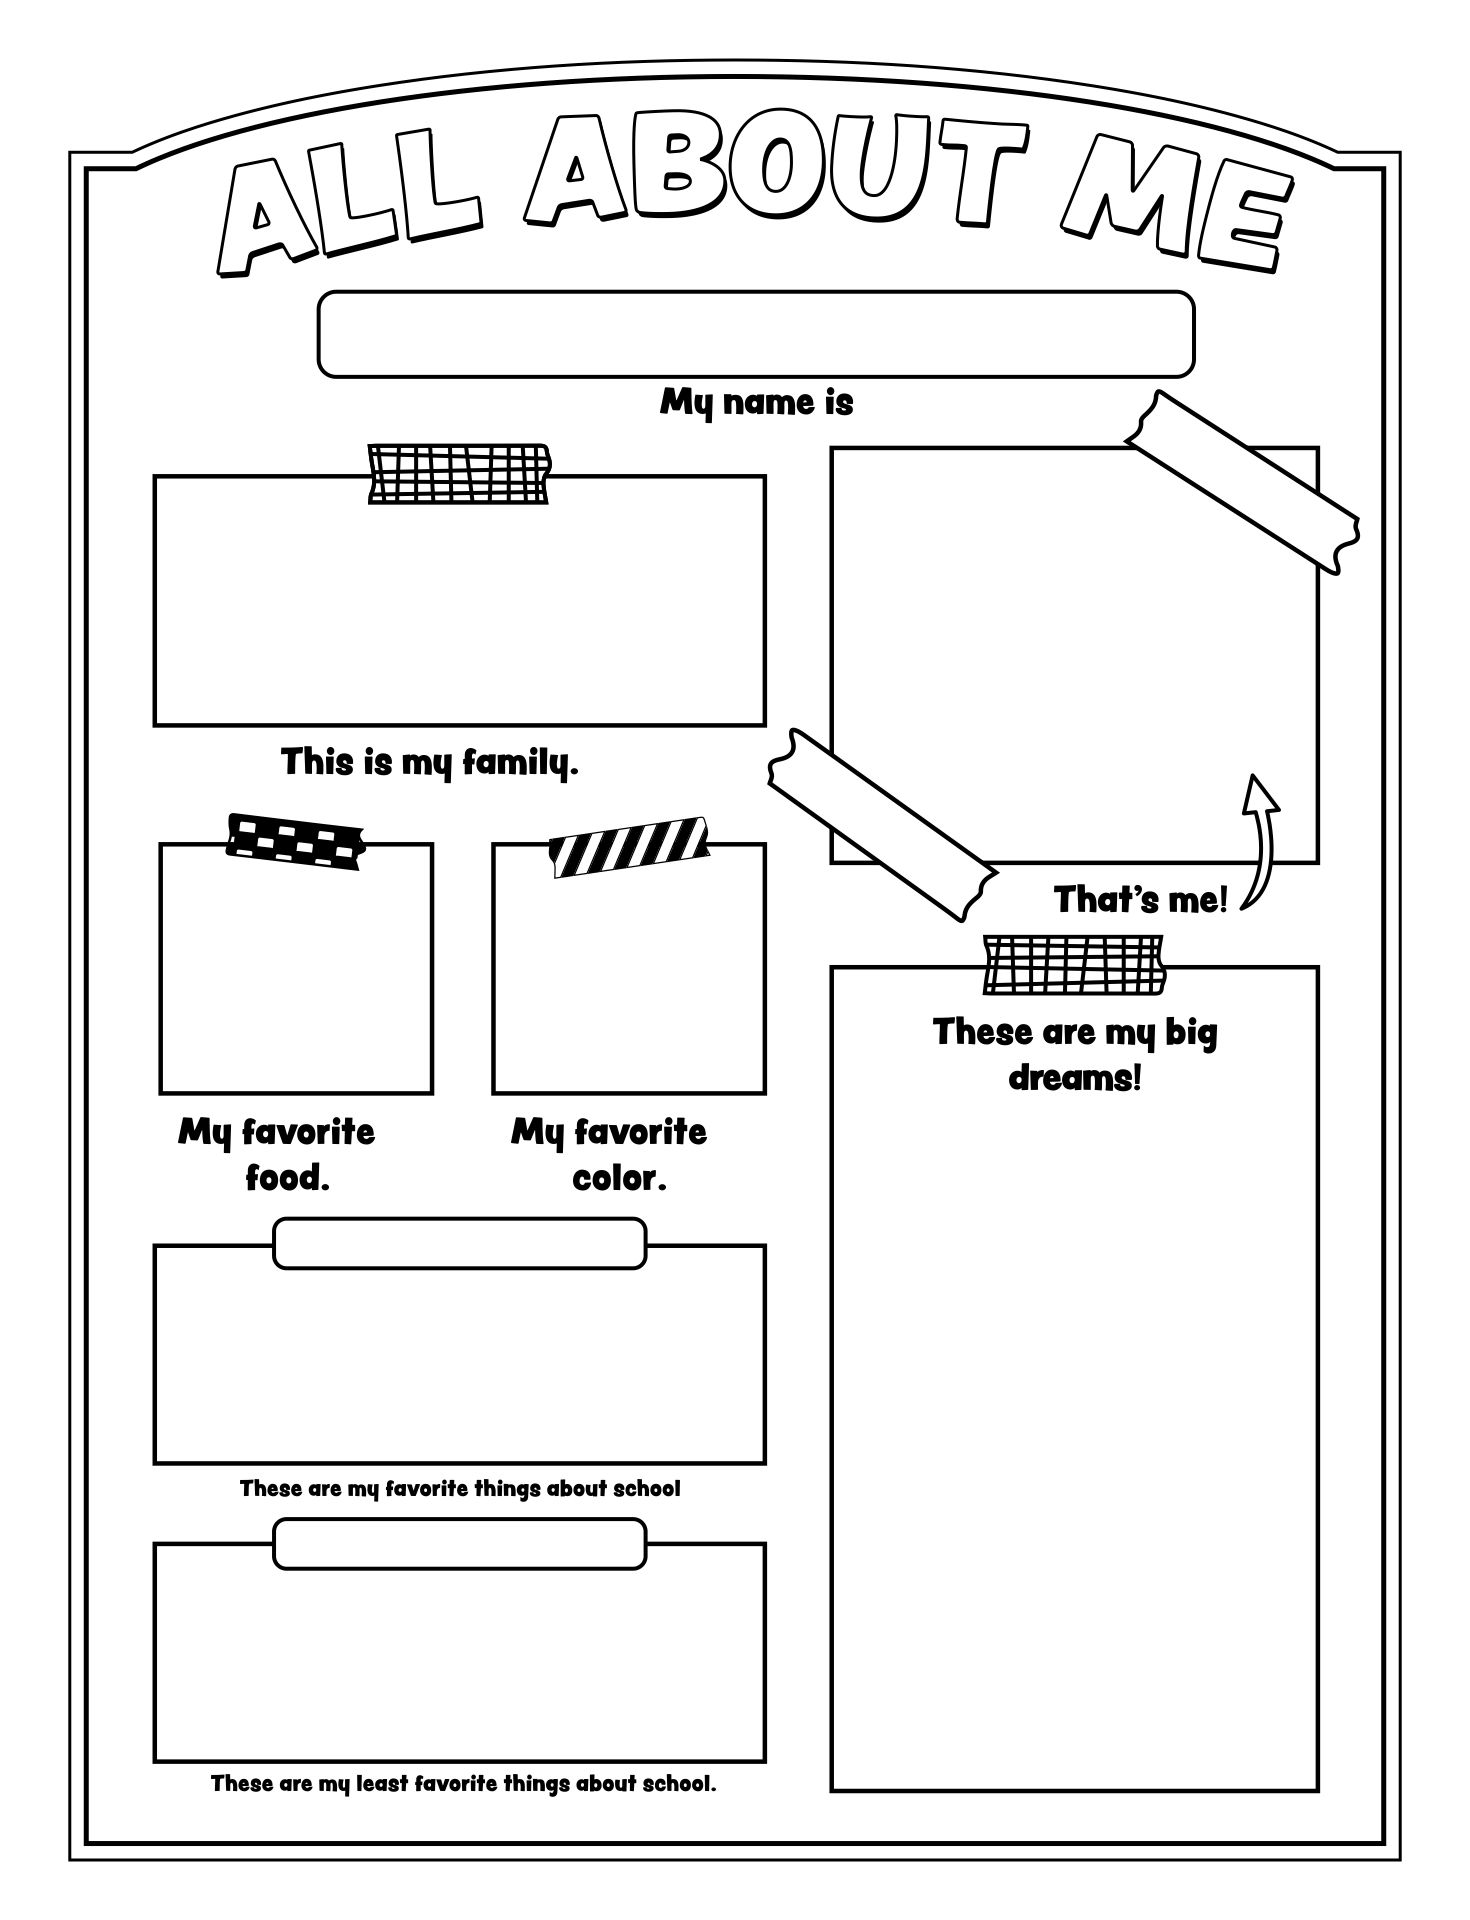 Gallery For u0026gt; All About Me Worksheet For Middle School ...